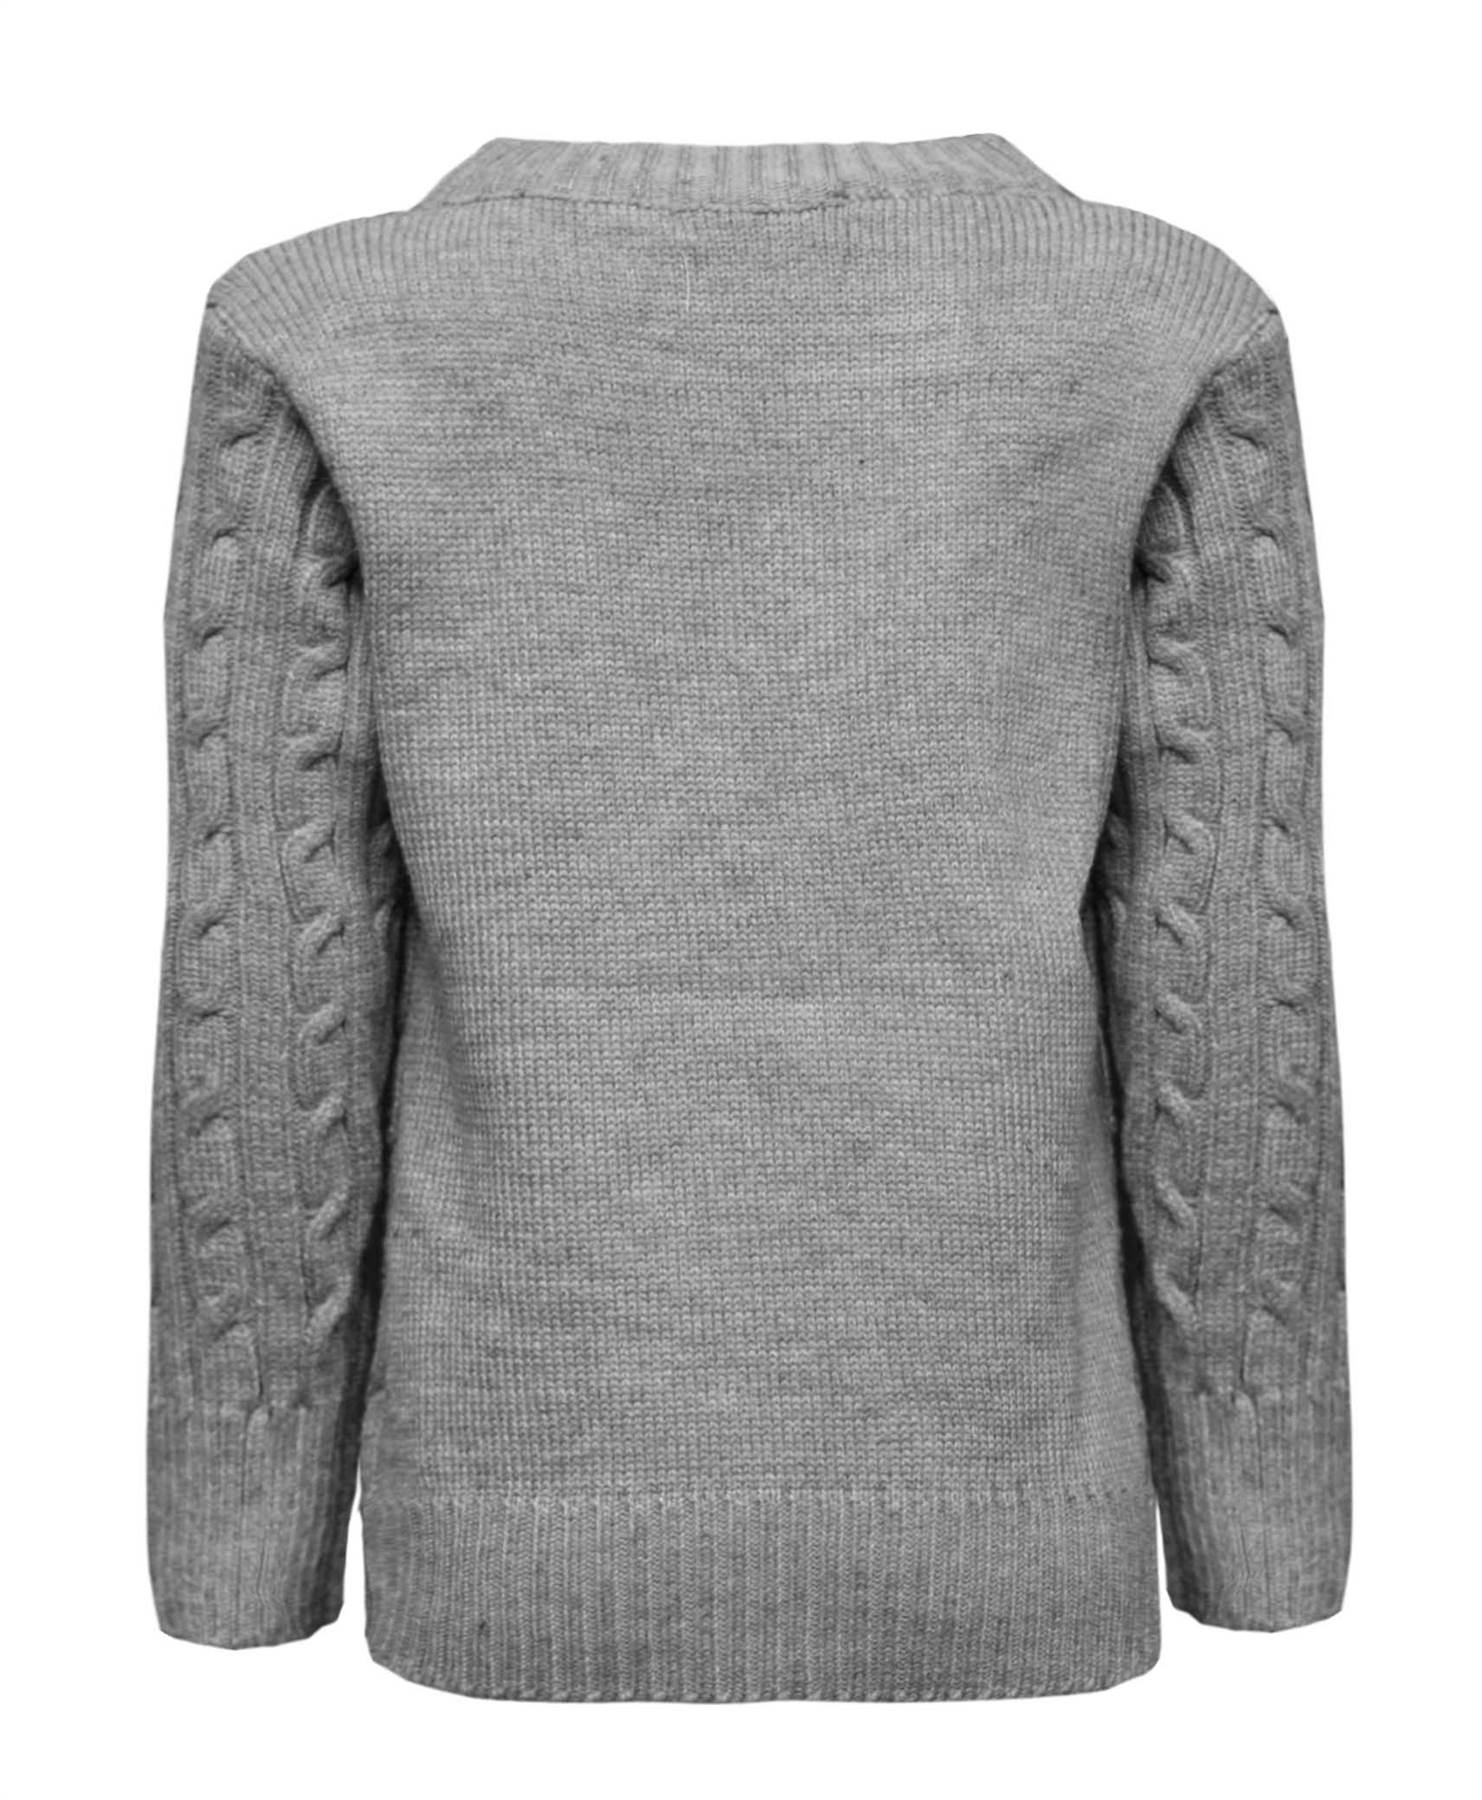 BOYS-CABLE-KNIT-JUMPER-KIDS-PULLOVER-TOP-1-12-YEARS